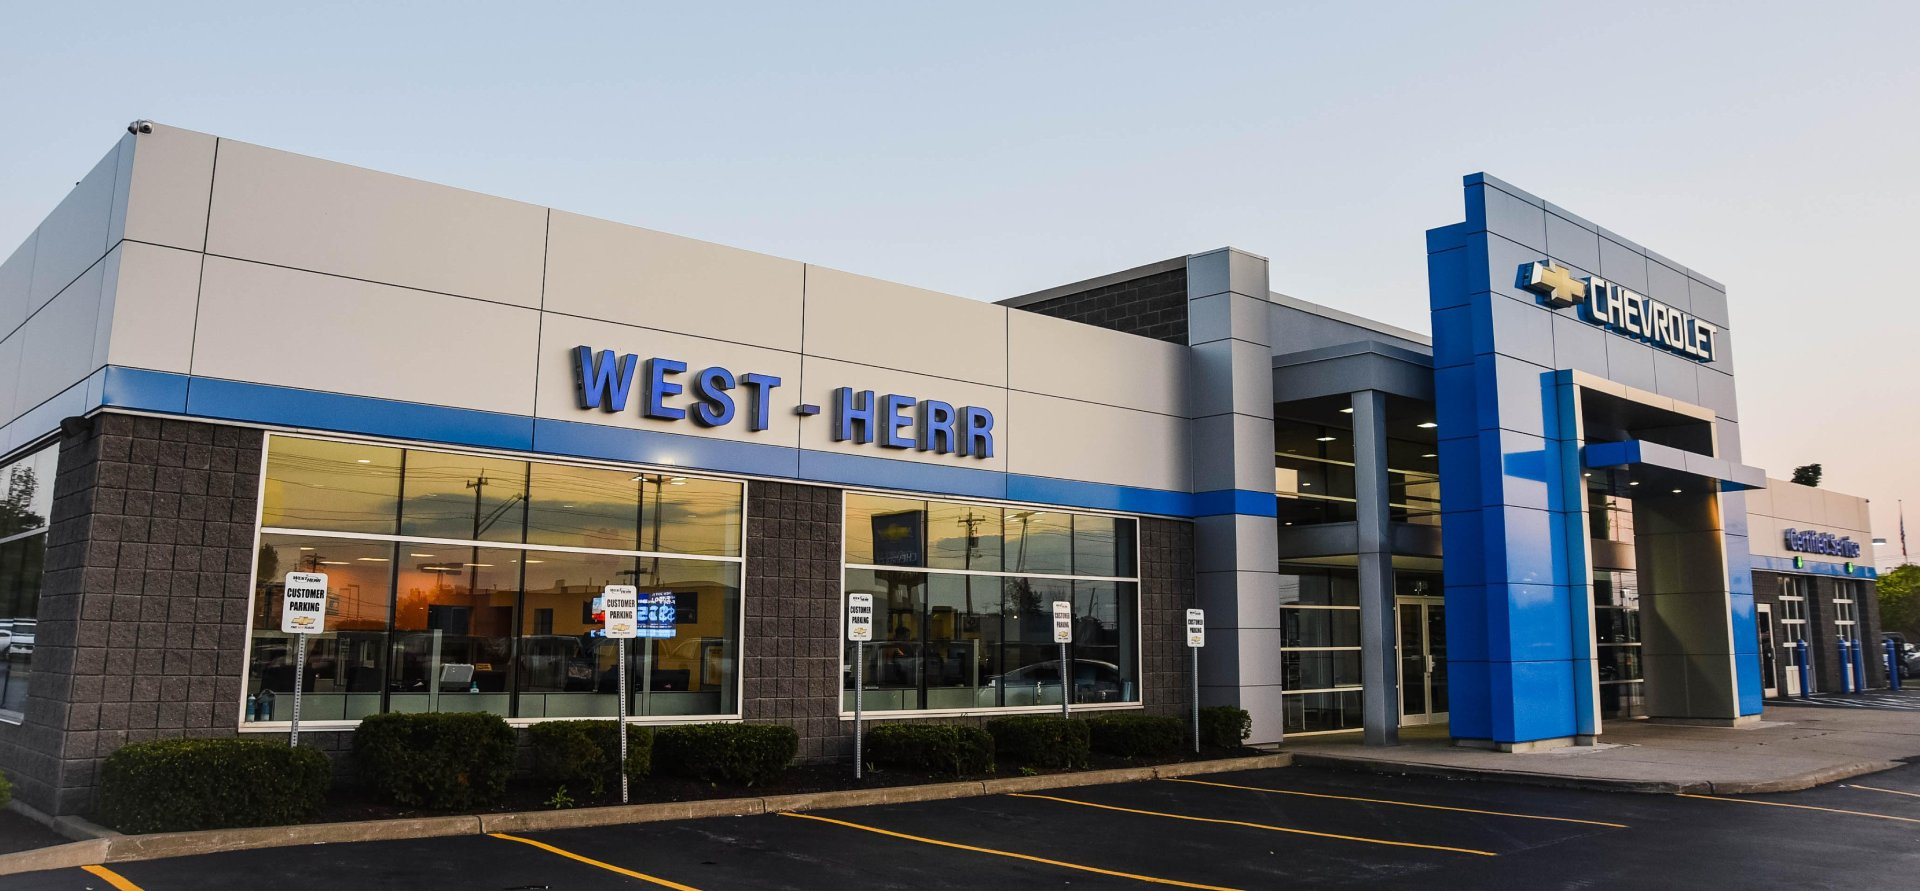 West Herr Chevrolet Hamburg, dealership exterior